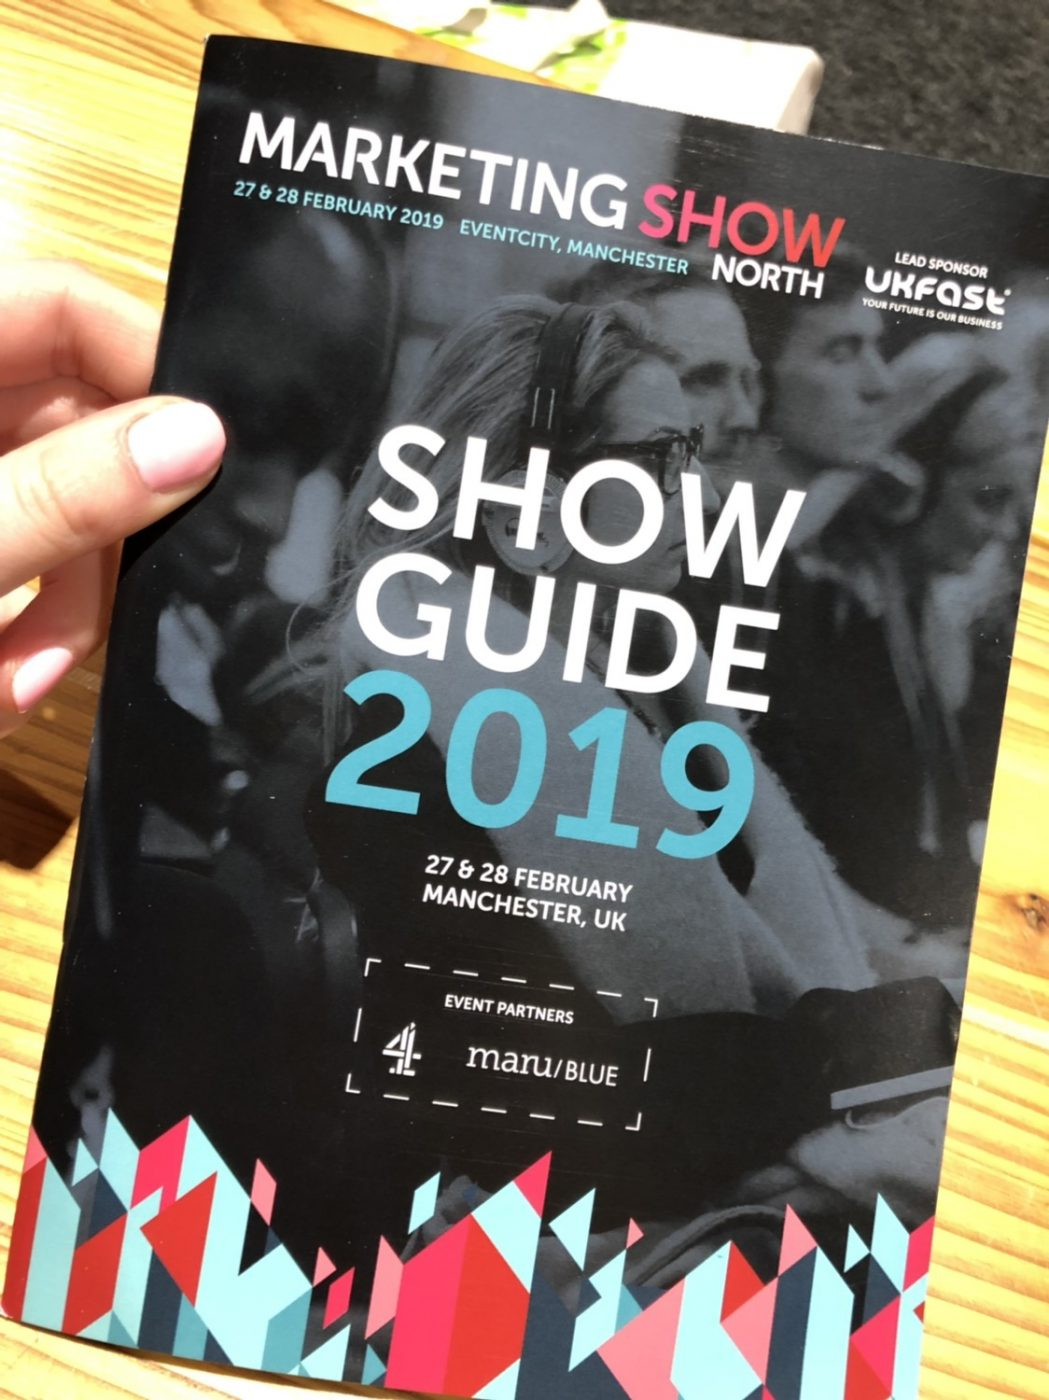 marketing show north